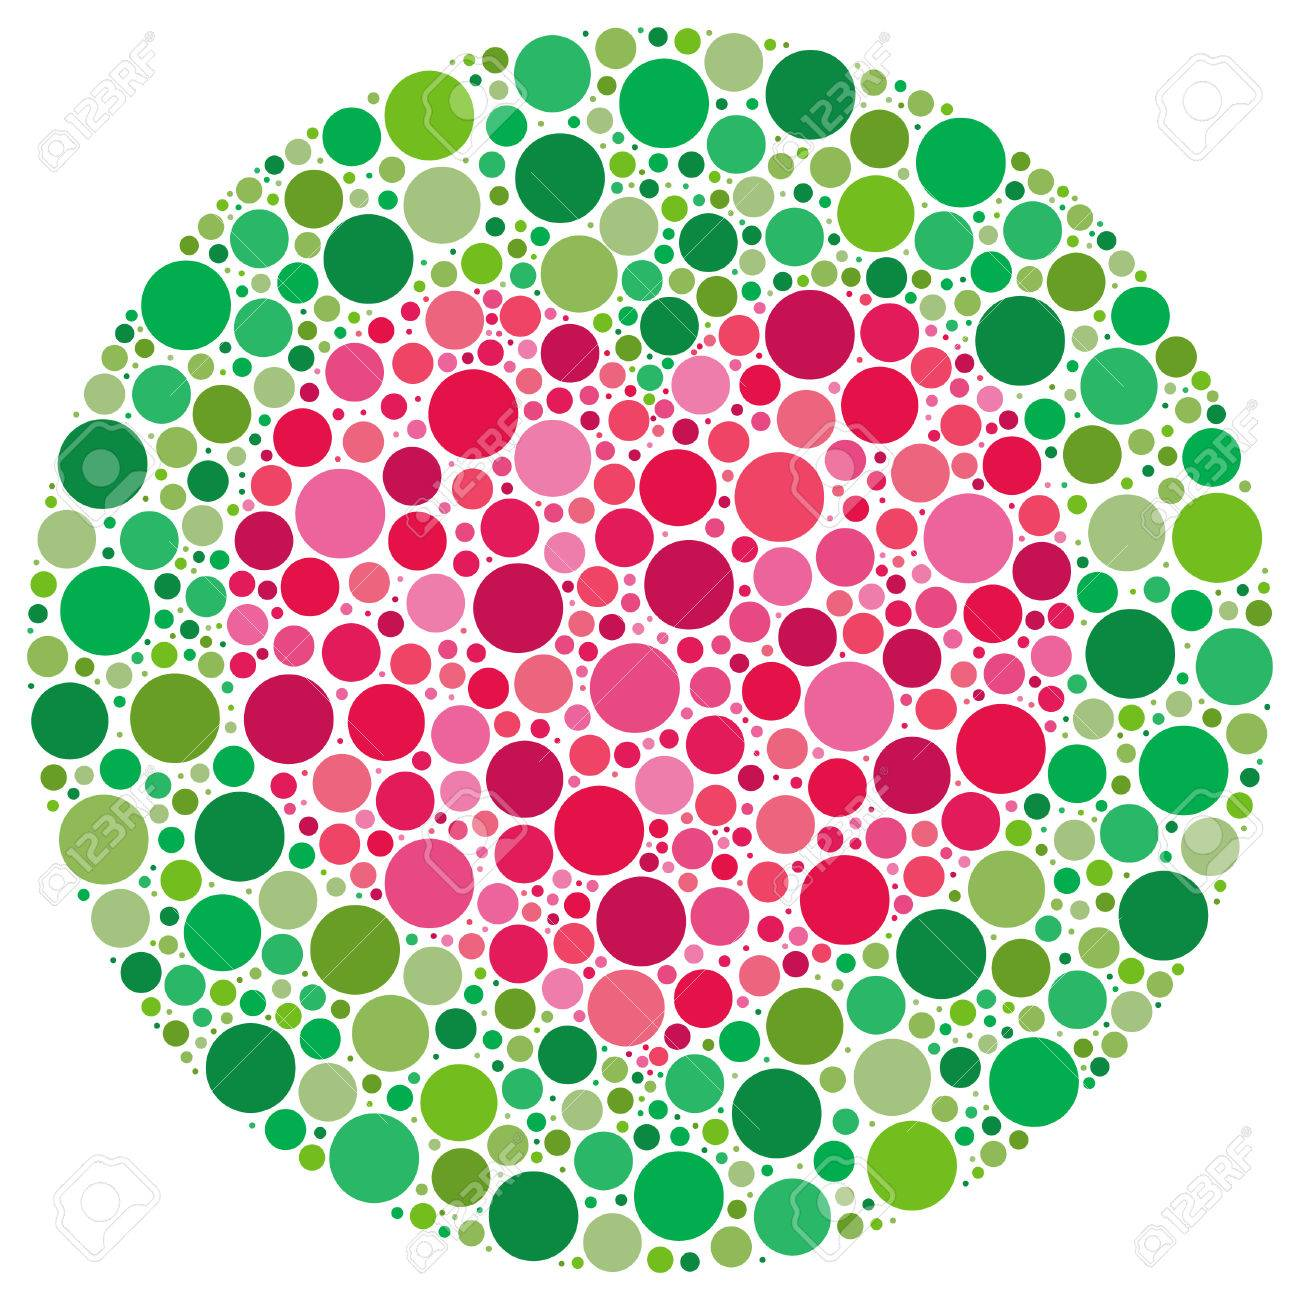 Heart shape made of circles, inspired by colour blind tests. The vector version has the heart and main circle templates as a hidden layer. Stock Vector - 7219623